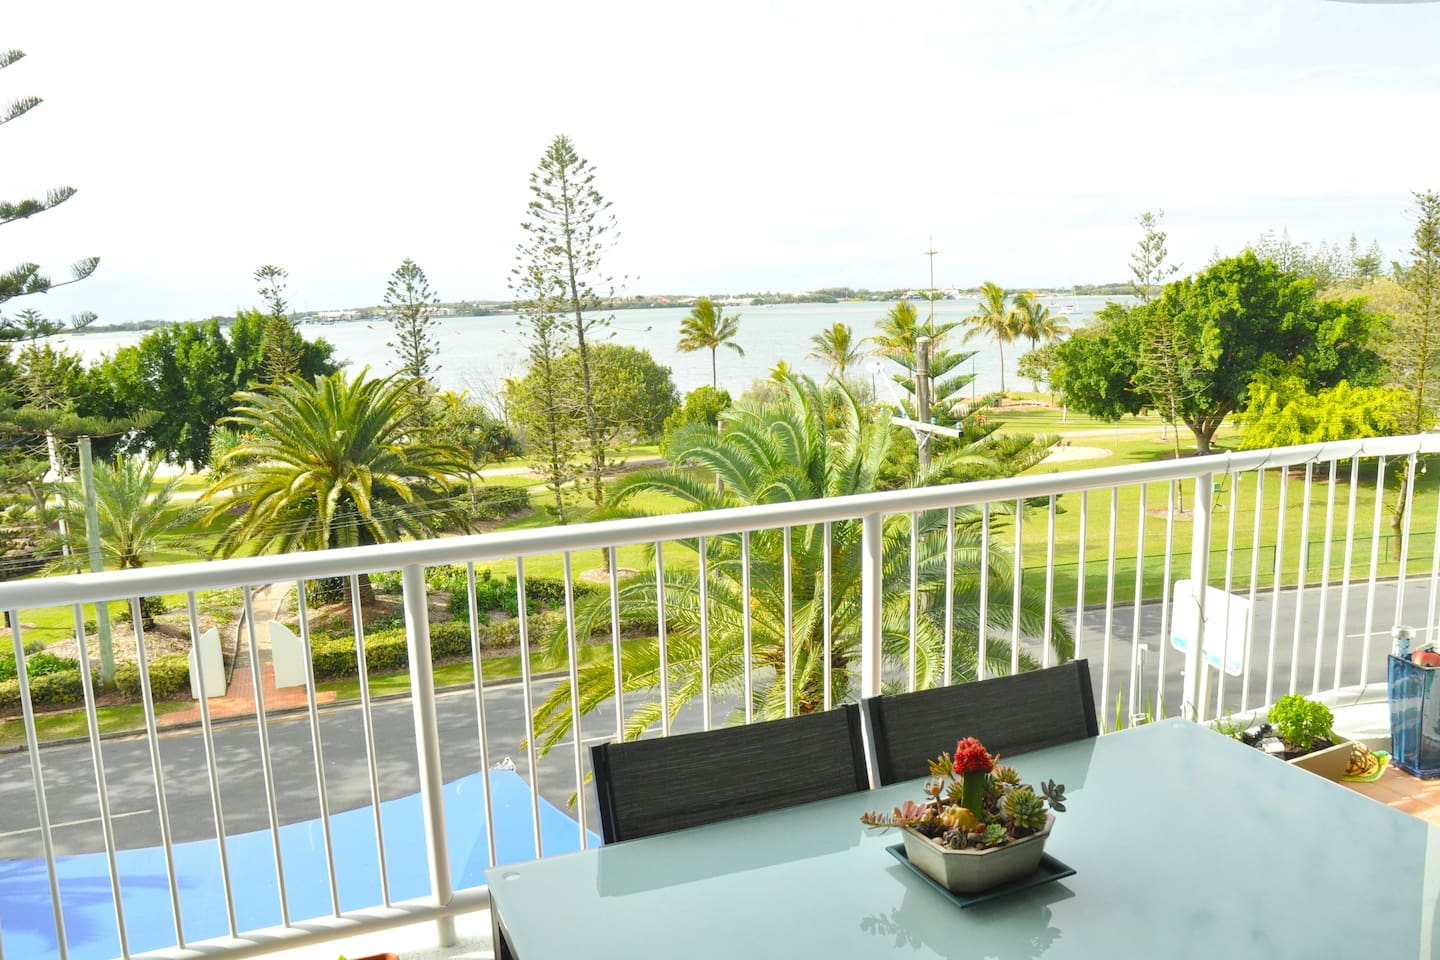 This is the great view from the verandah. A hop, skip and a jump literally from the water